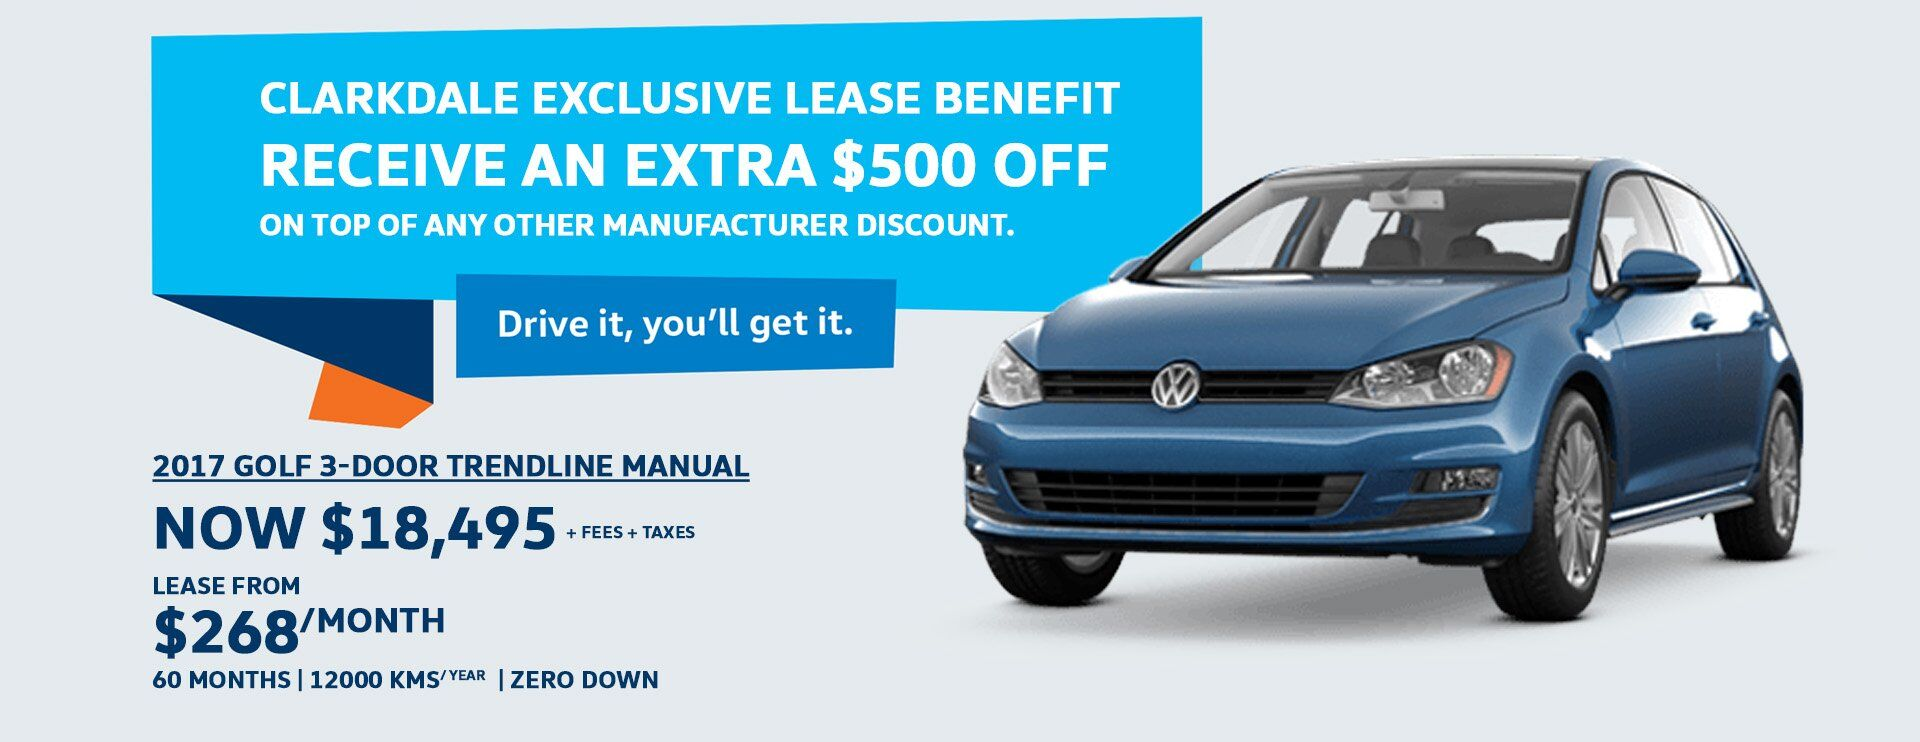 VW GOLF SPECIAL AT CLARKDALE VW